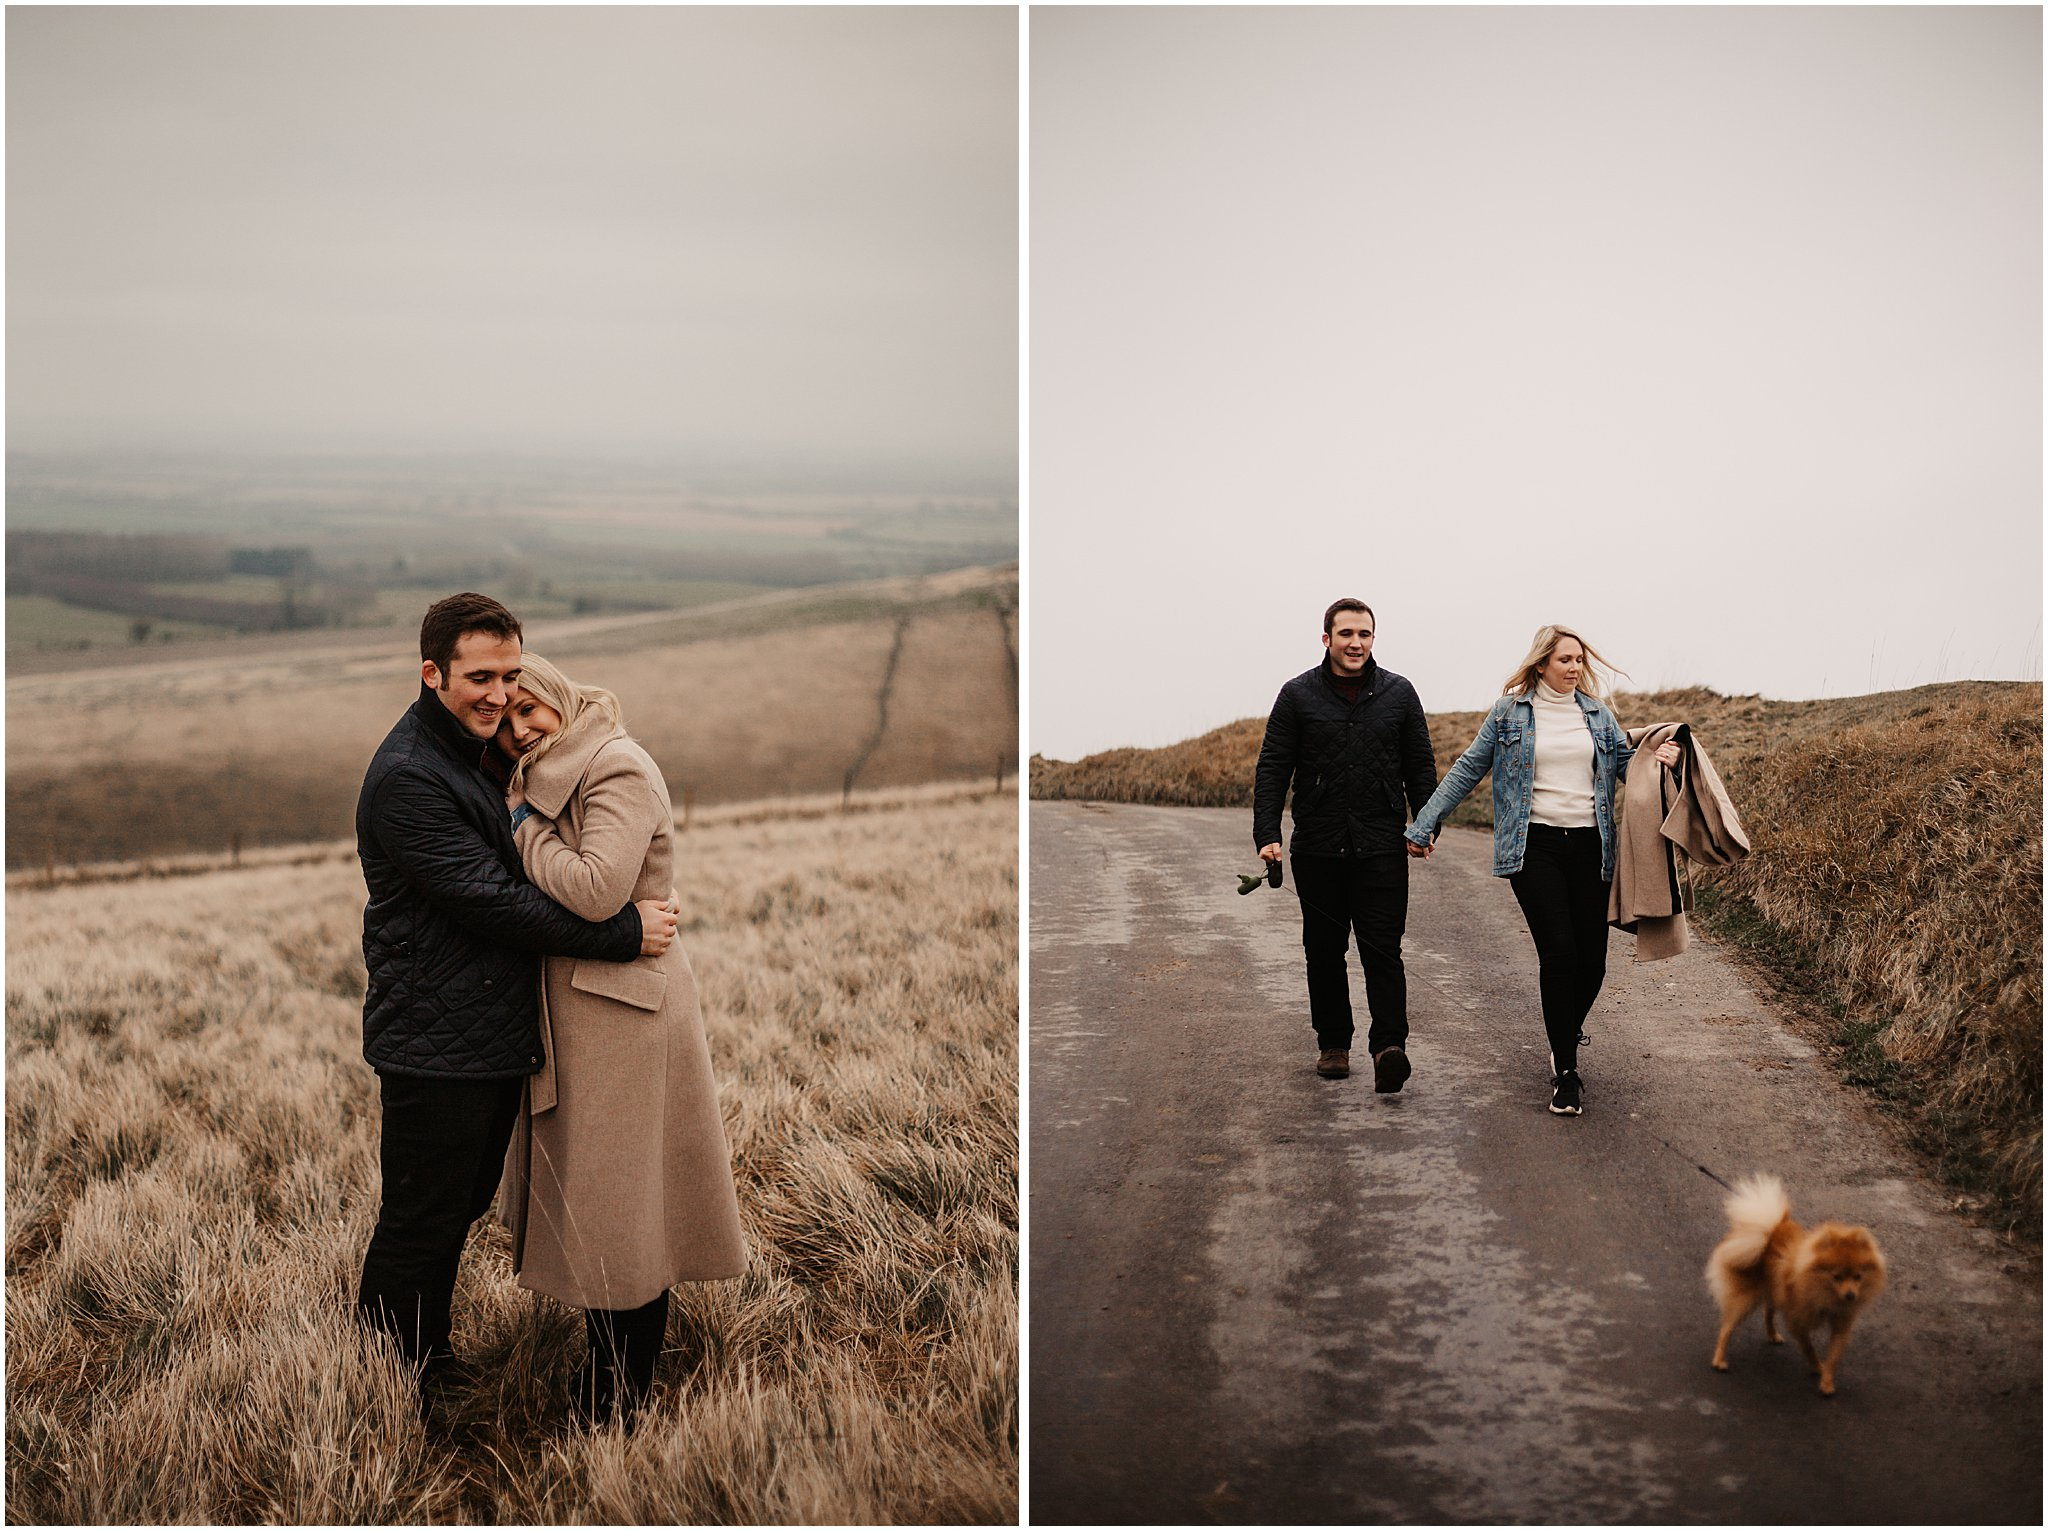 Mike & Charley_s Winter Engagement Shoot Wiltshire-28.jpg